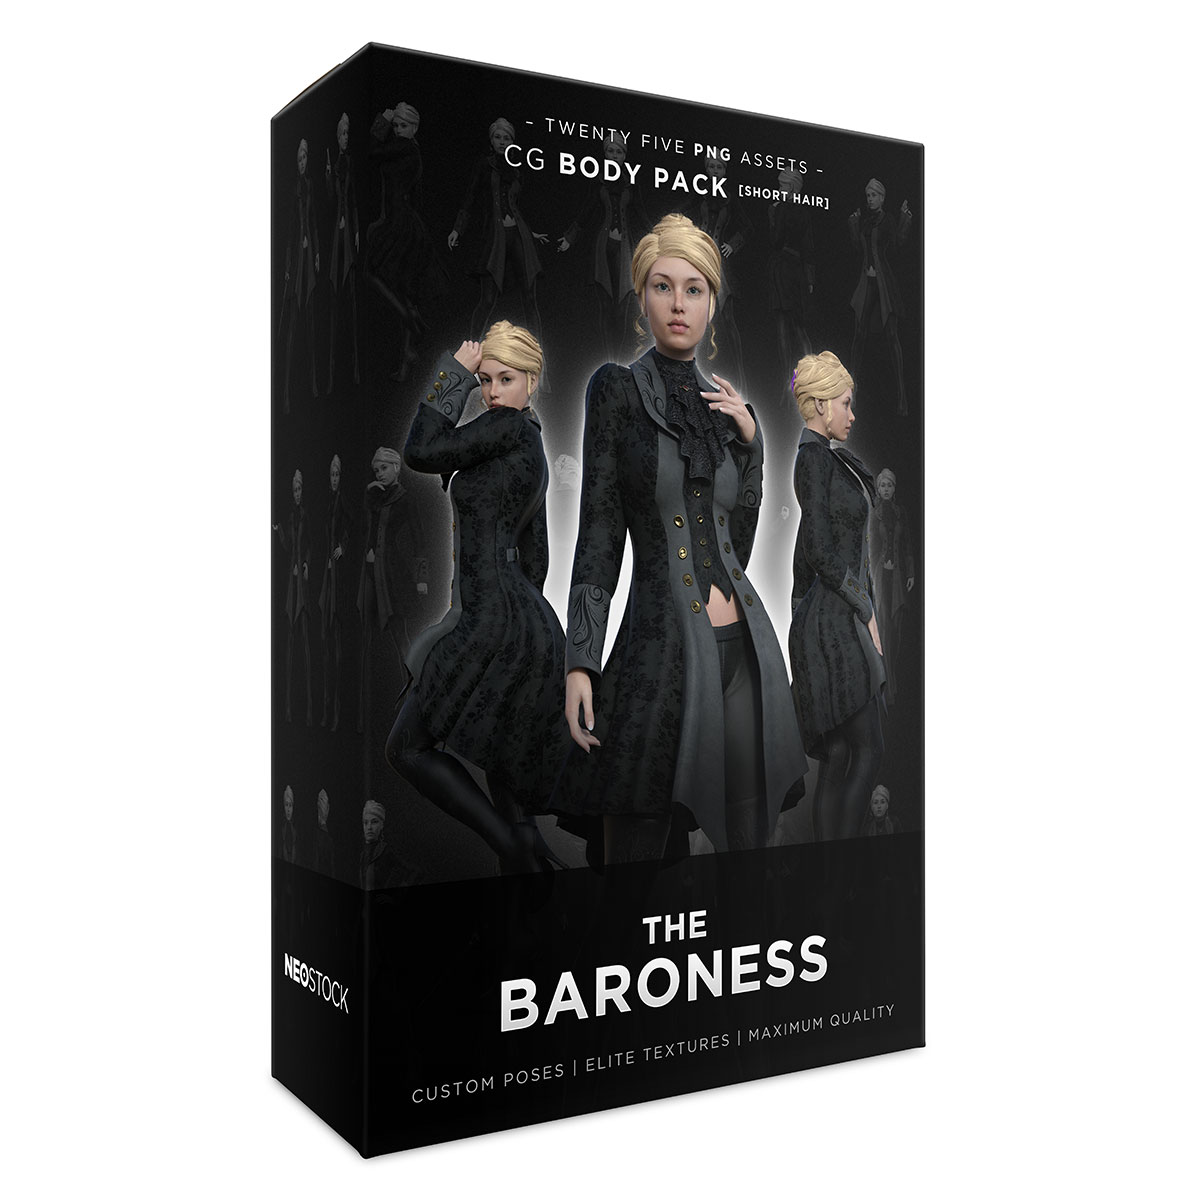 the baroness product box sales